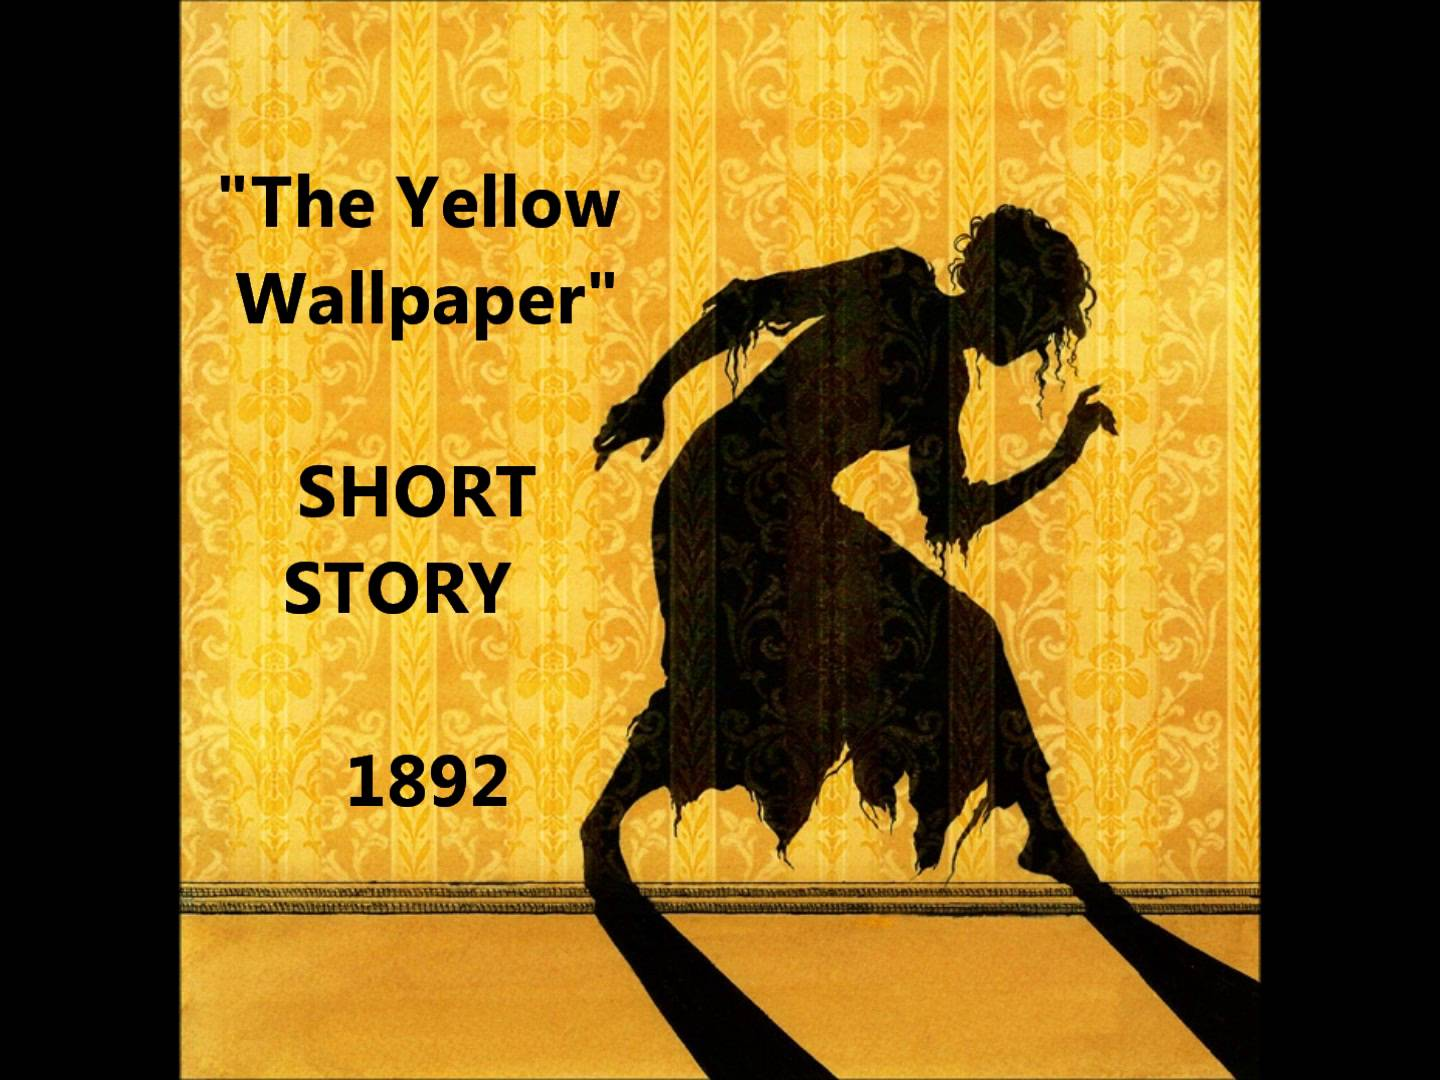 the yellow wallpaper by charlotte perkins gilman questions